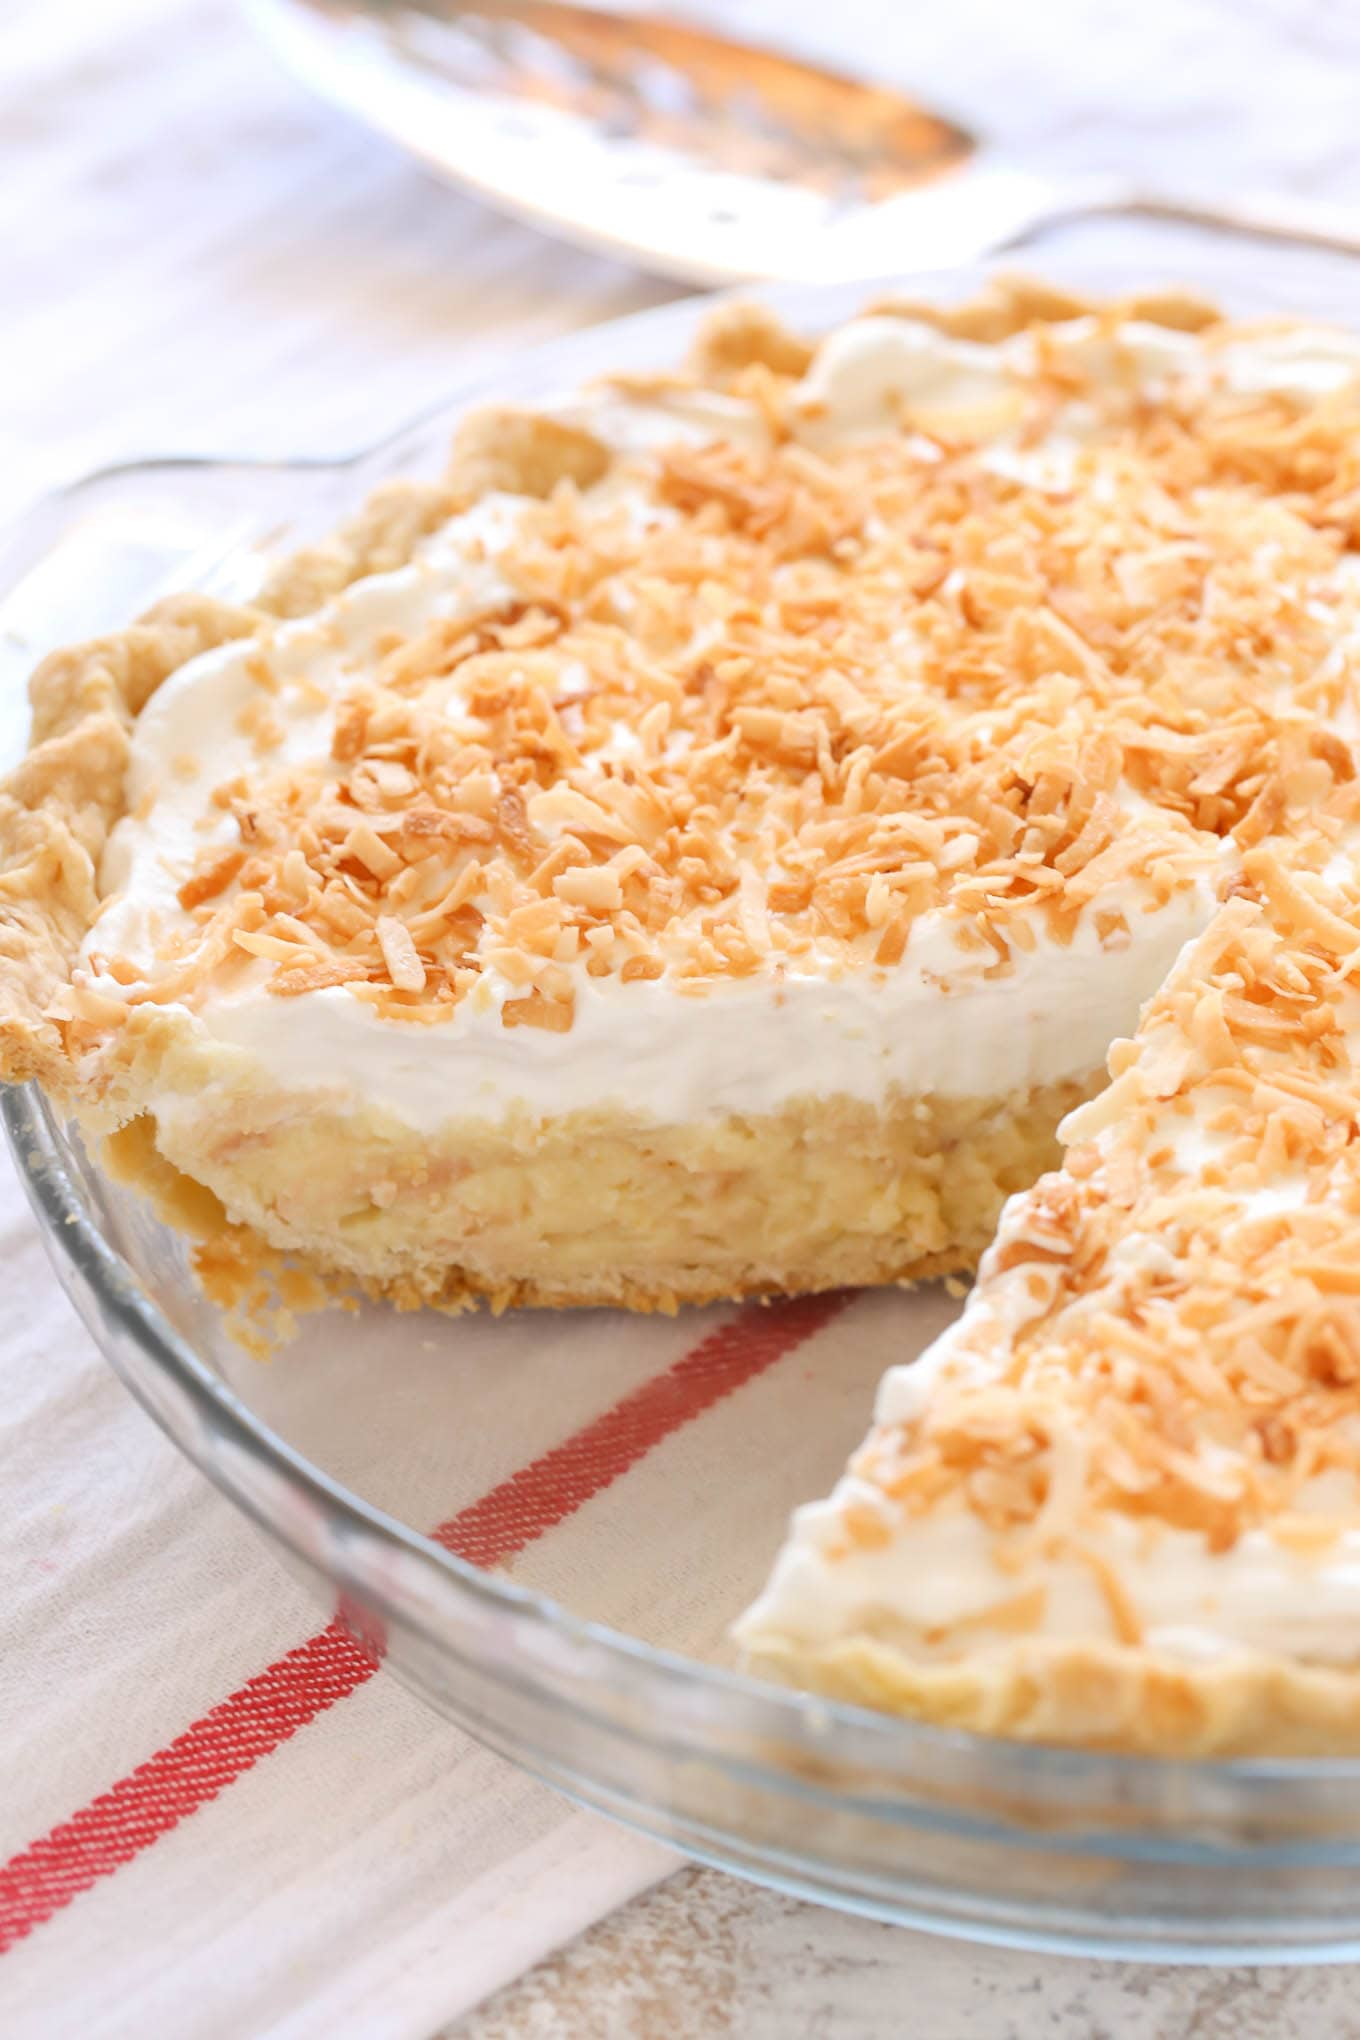 https://www.livewellbakeoften.com/coconut-cream-pie/